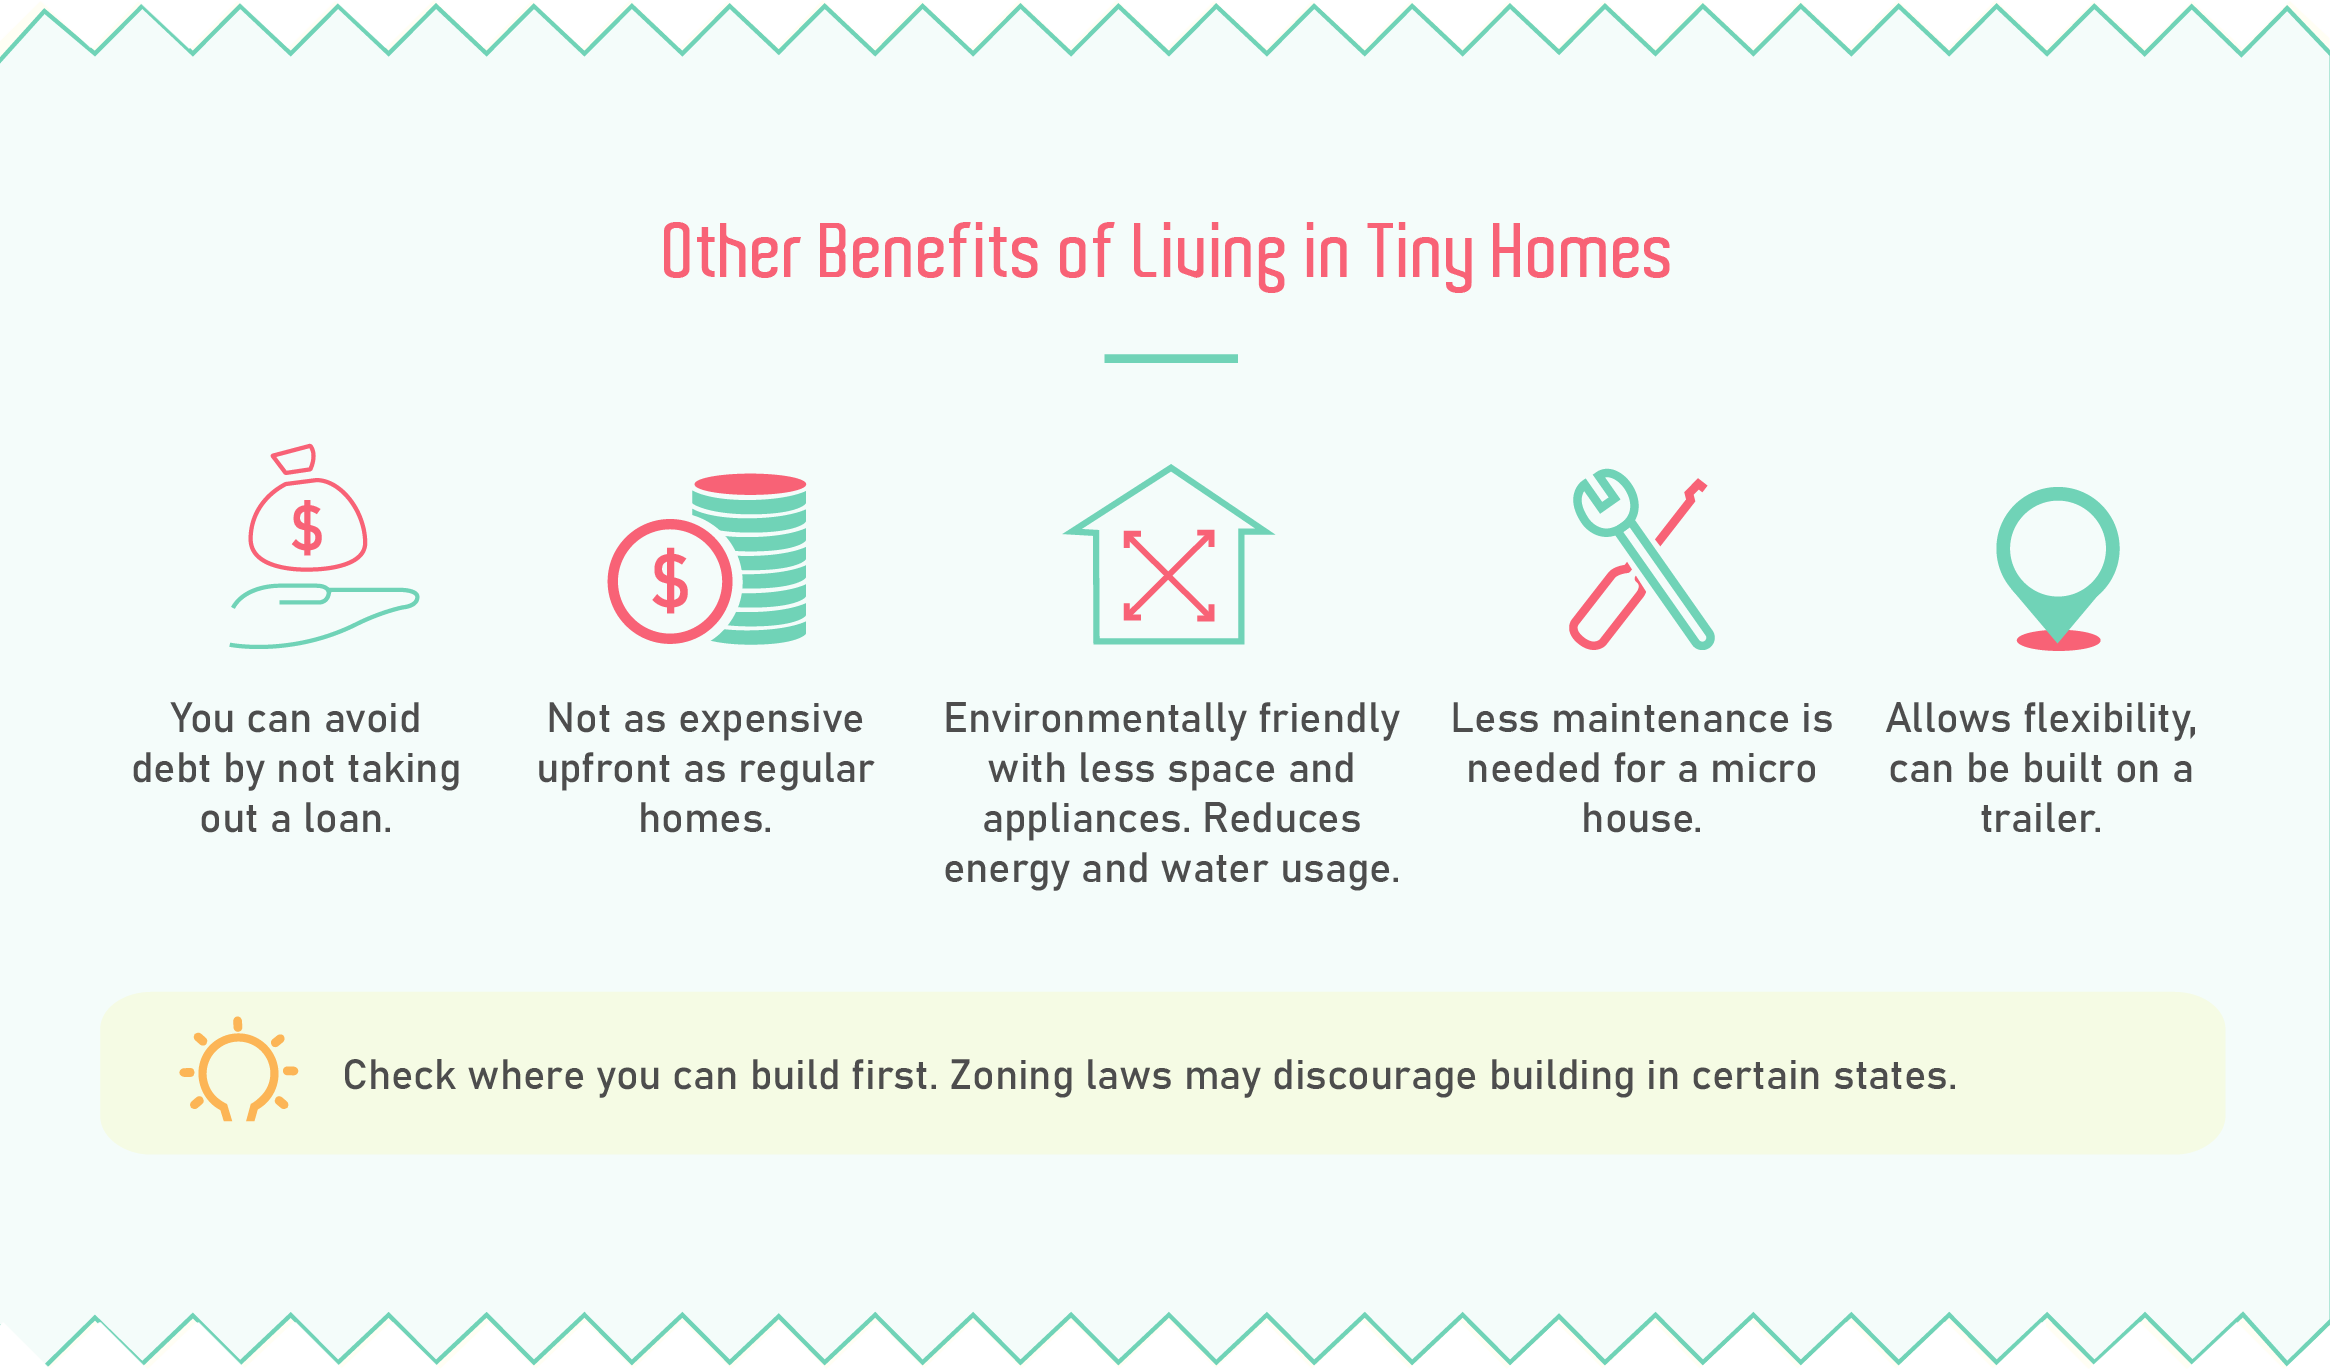 Other benefits of living in tiny homes